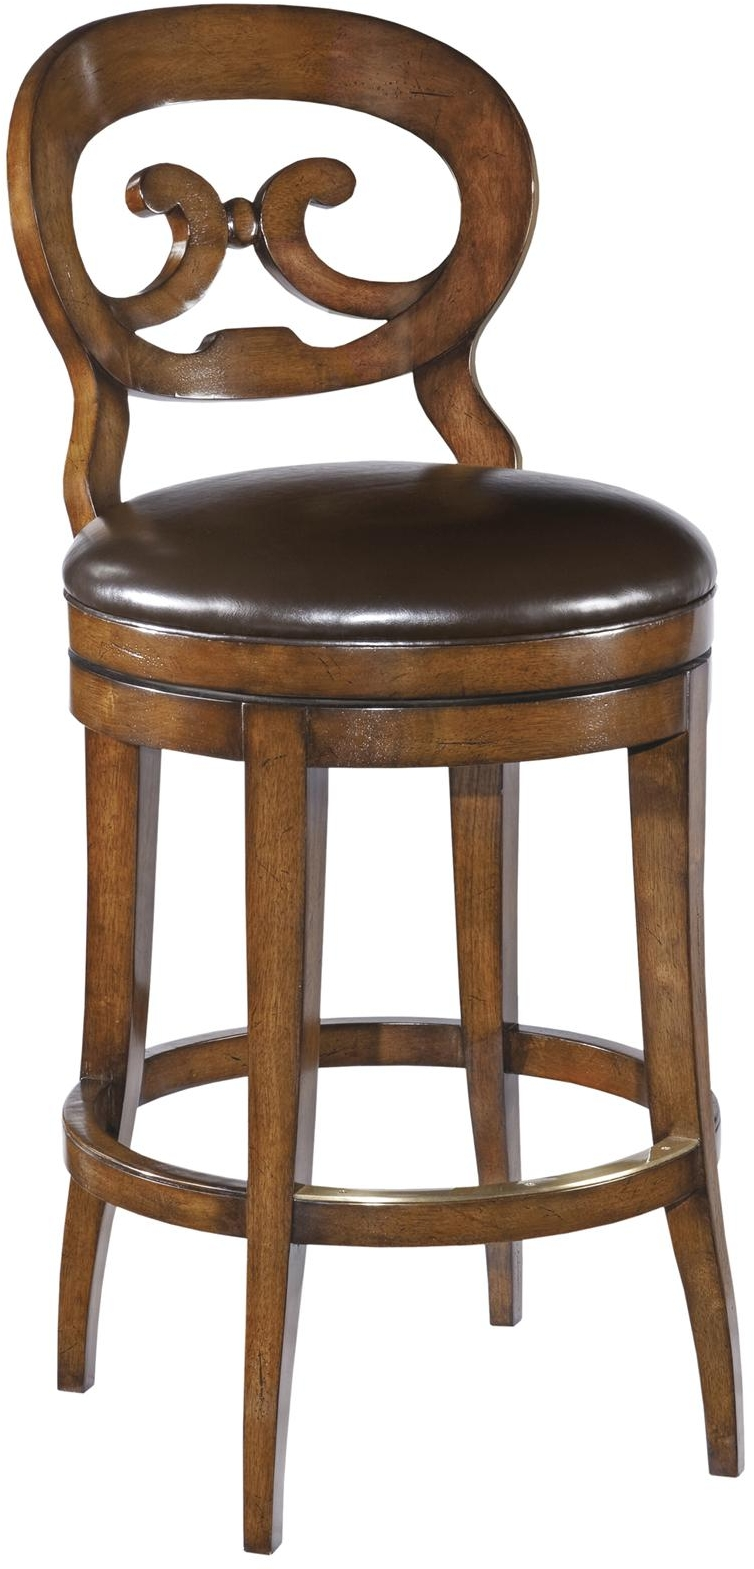 NEW FRENCH COUNTRY SWIVEL COUNTER STOOL WAXED CHERRY  : WB 215 1L from www.ebay.com size 754 x 1569 jpeg 412kB